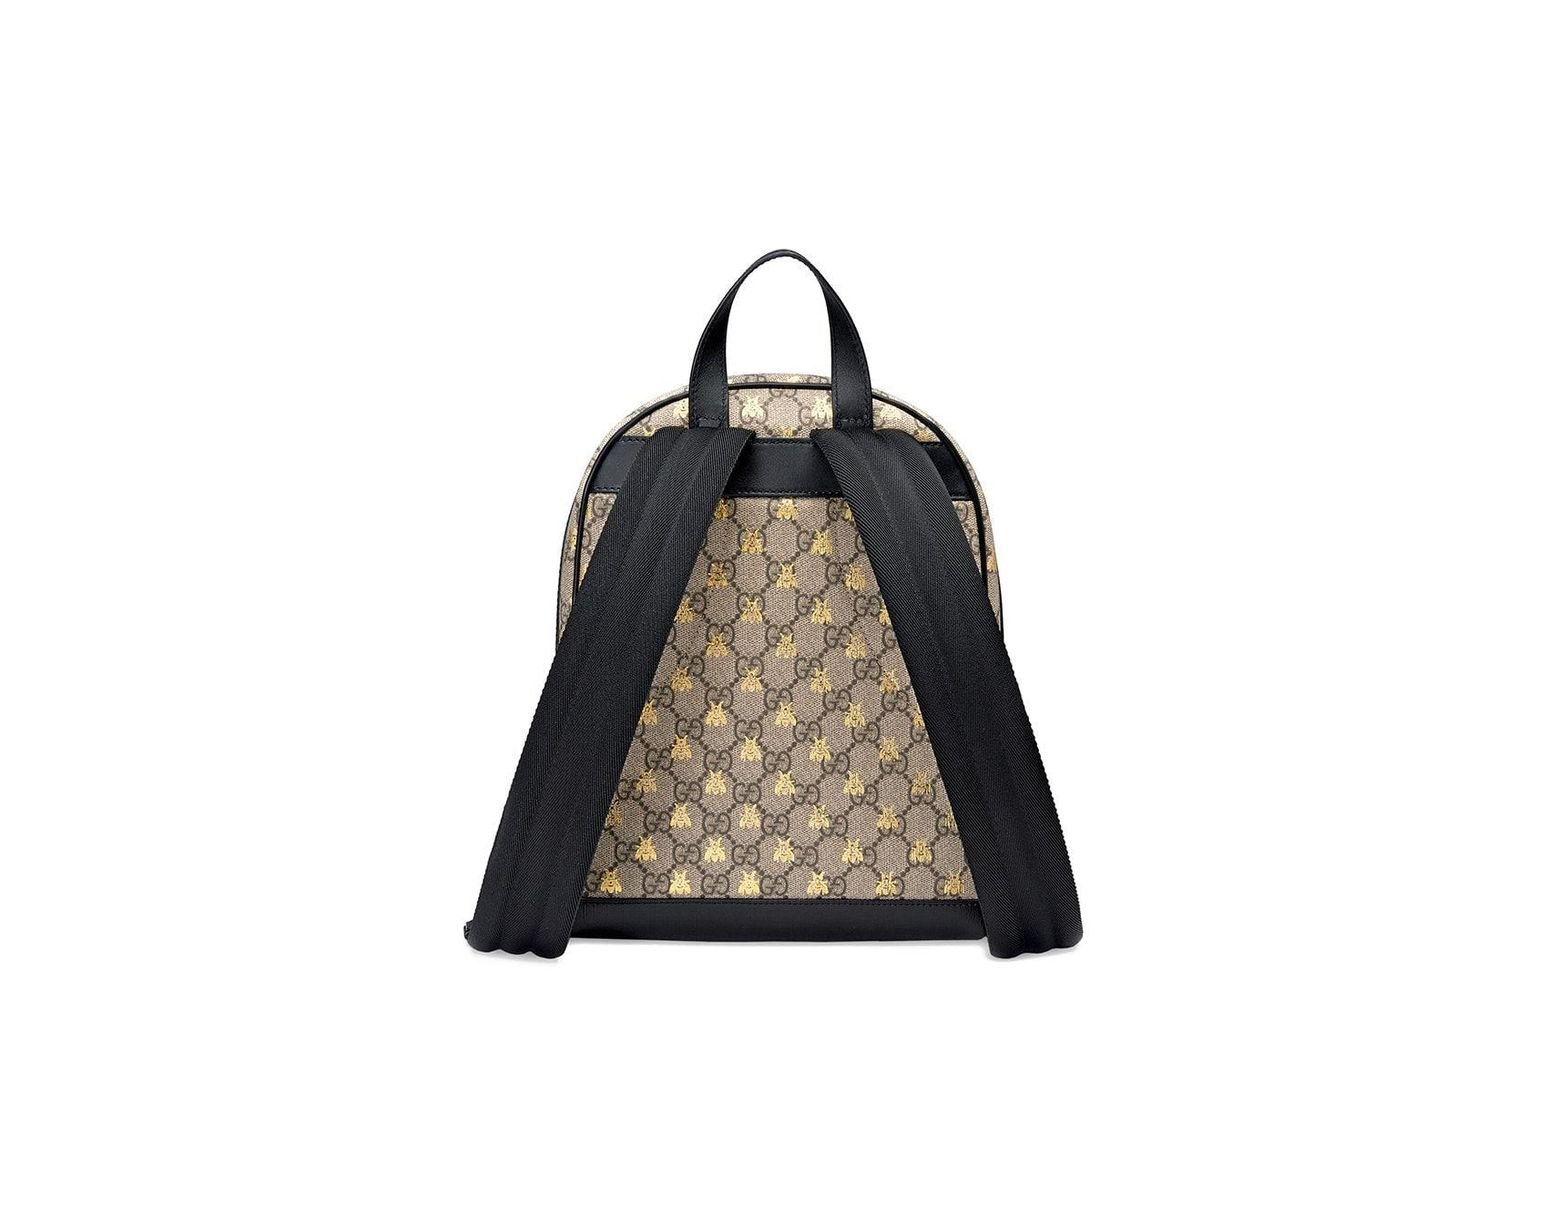 0b654bf7d67b Gucci GG Supreme Bees Backpack in Black - Lyst